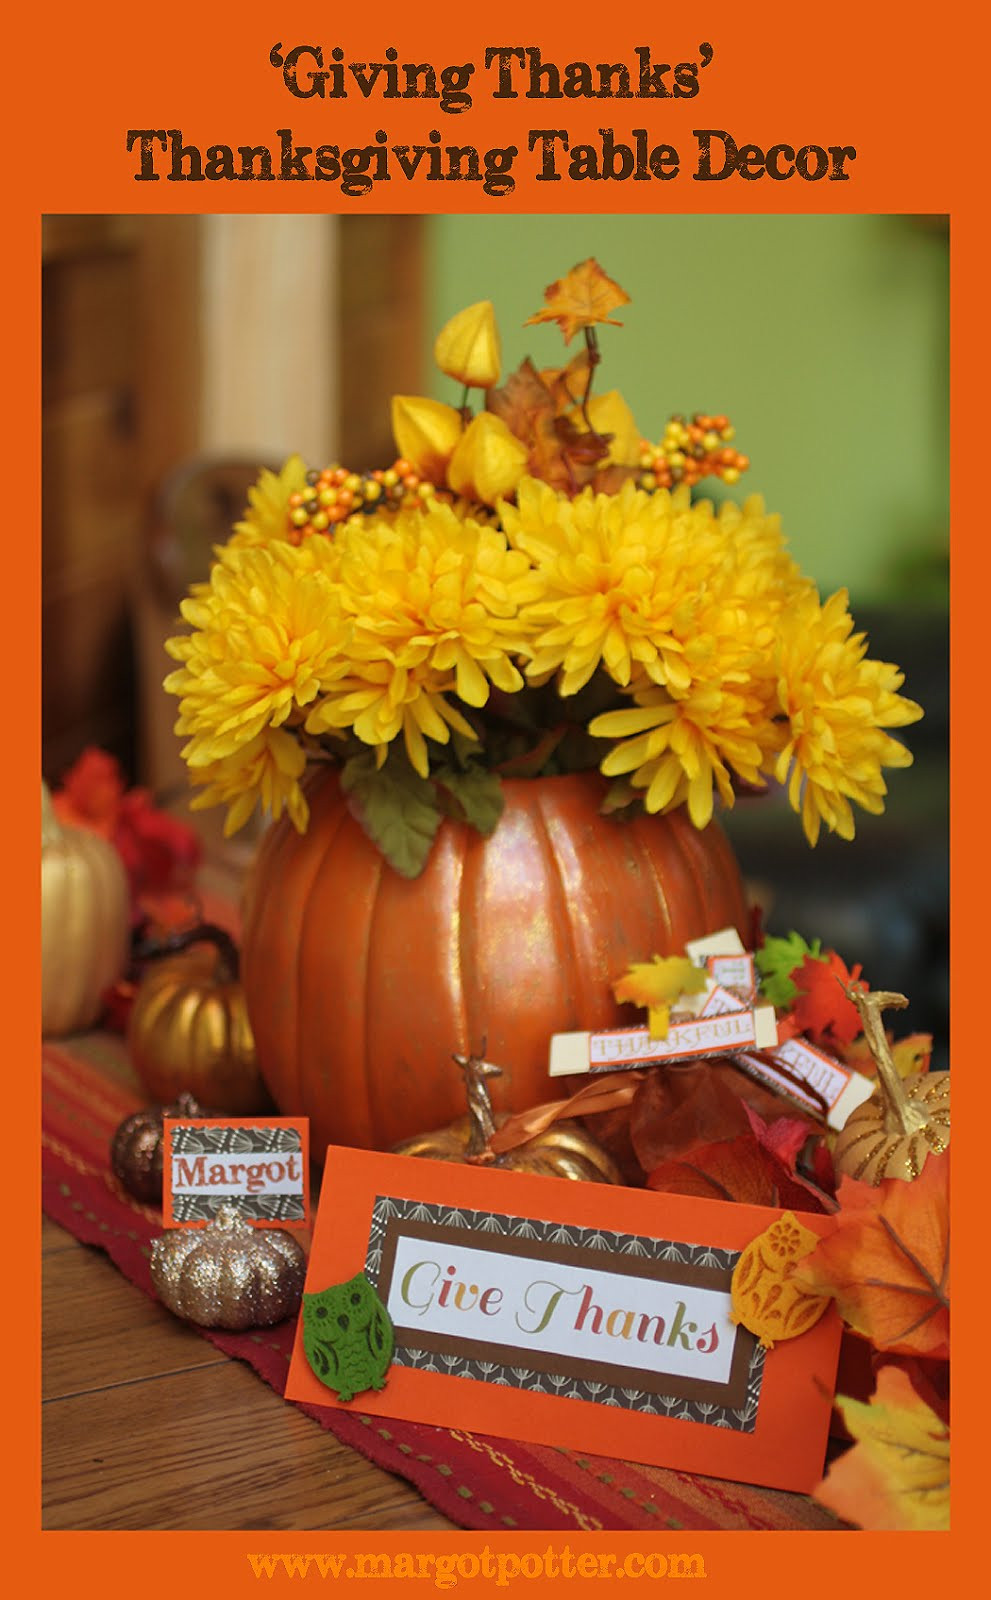 Diy Thanksgiving Table Decorations  iLoveToCreate Blog Giving Thanks DIY Thanksgiving Table Decor